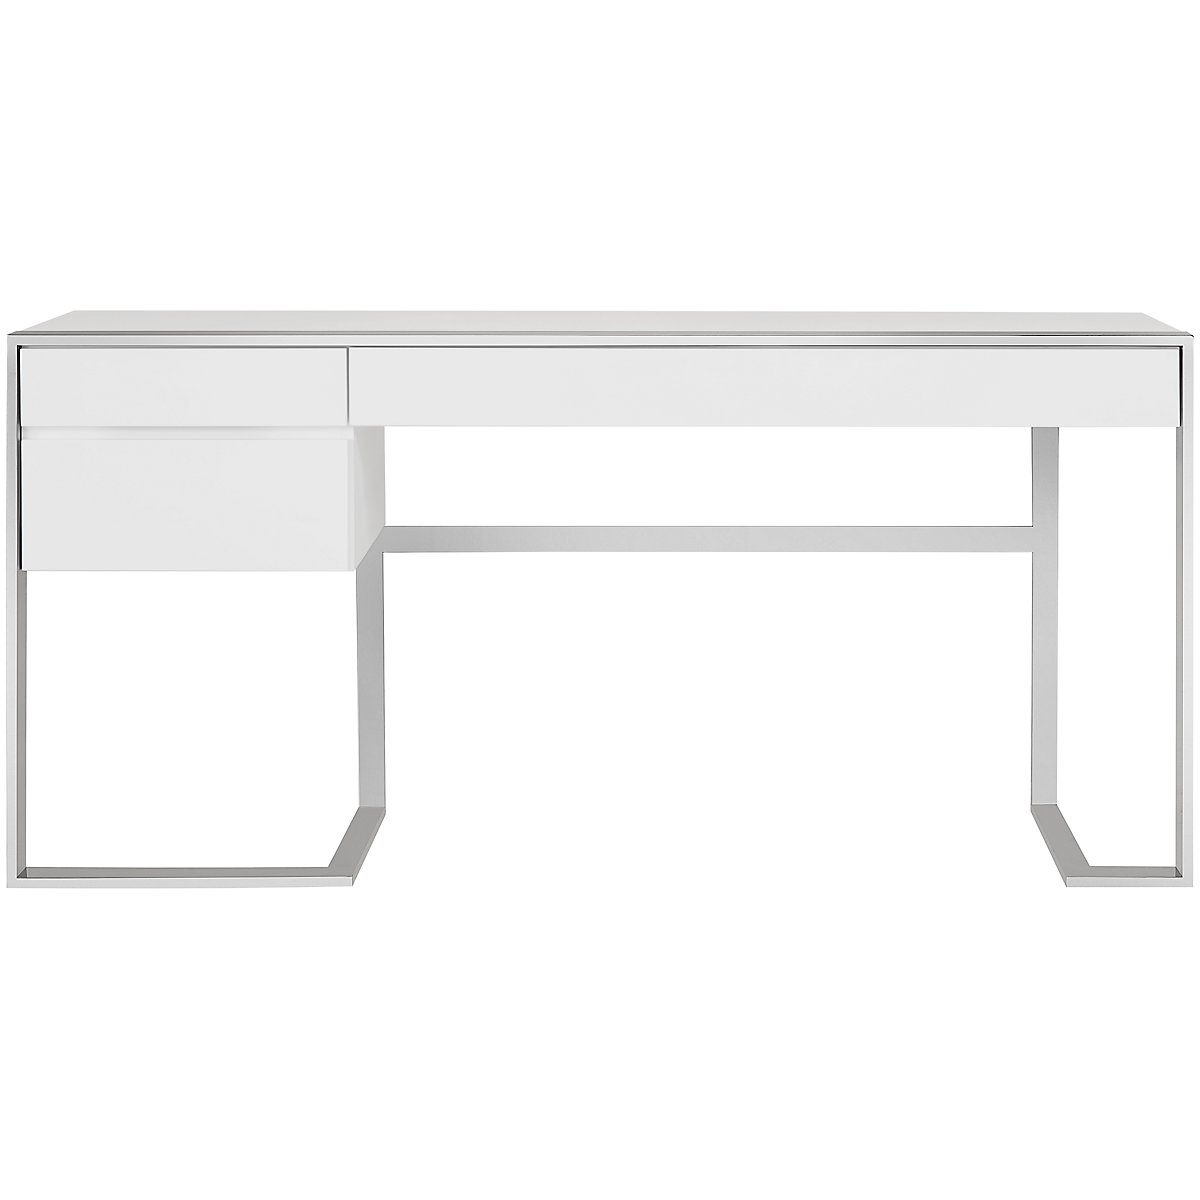 Neo White Wood Desk